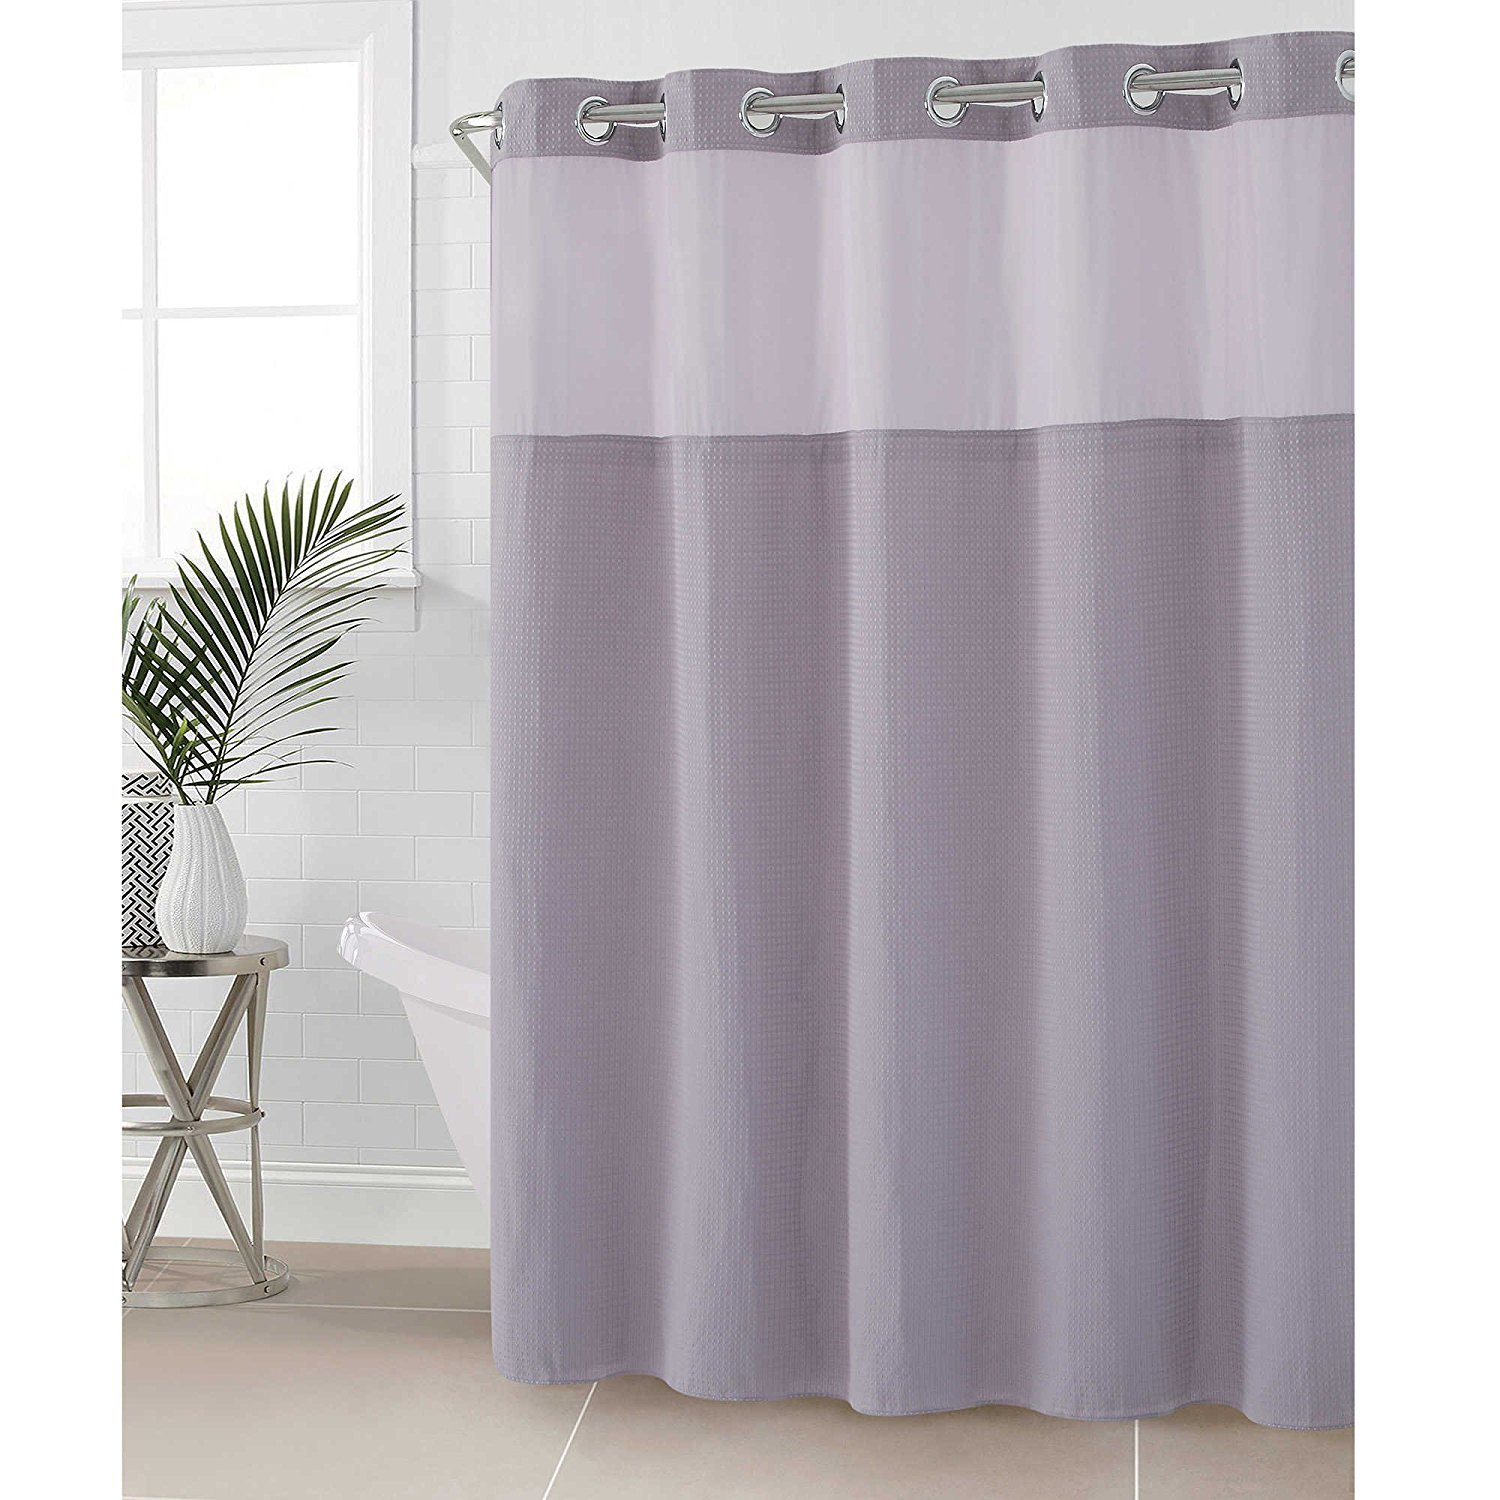 Hookless fabric shower curtain with built in liner taupe diamond pique - Amazon Com Hookless Hangis In Seconds Waffle Fabric Shower Curtain 71 X 74 Taupe Home Kitchen